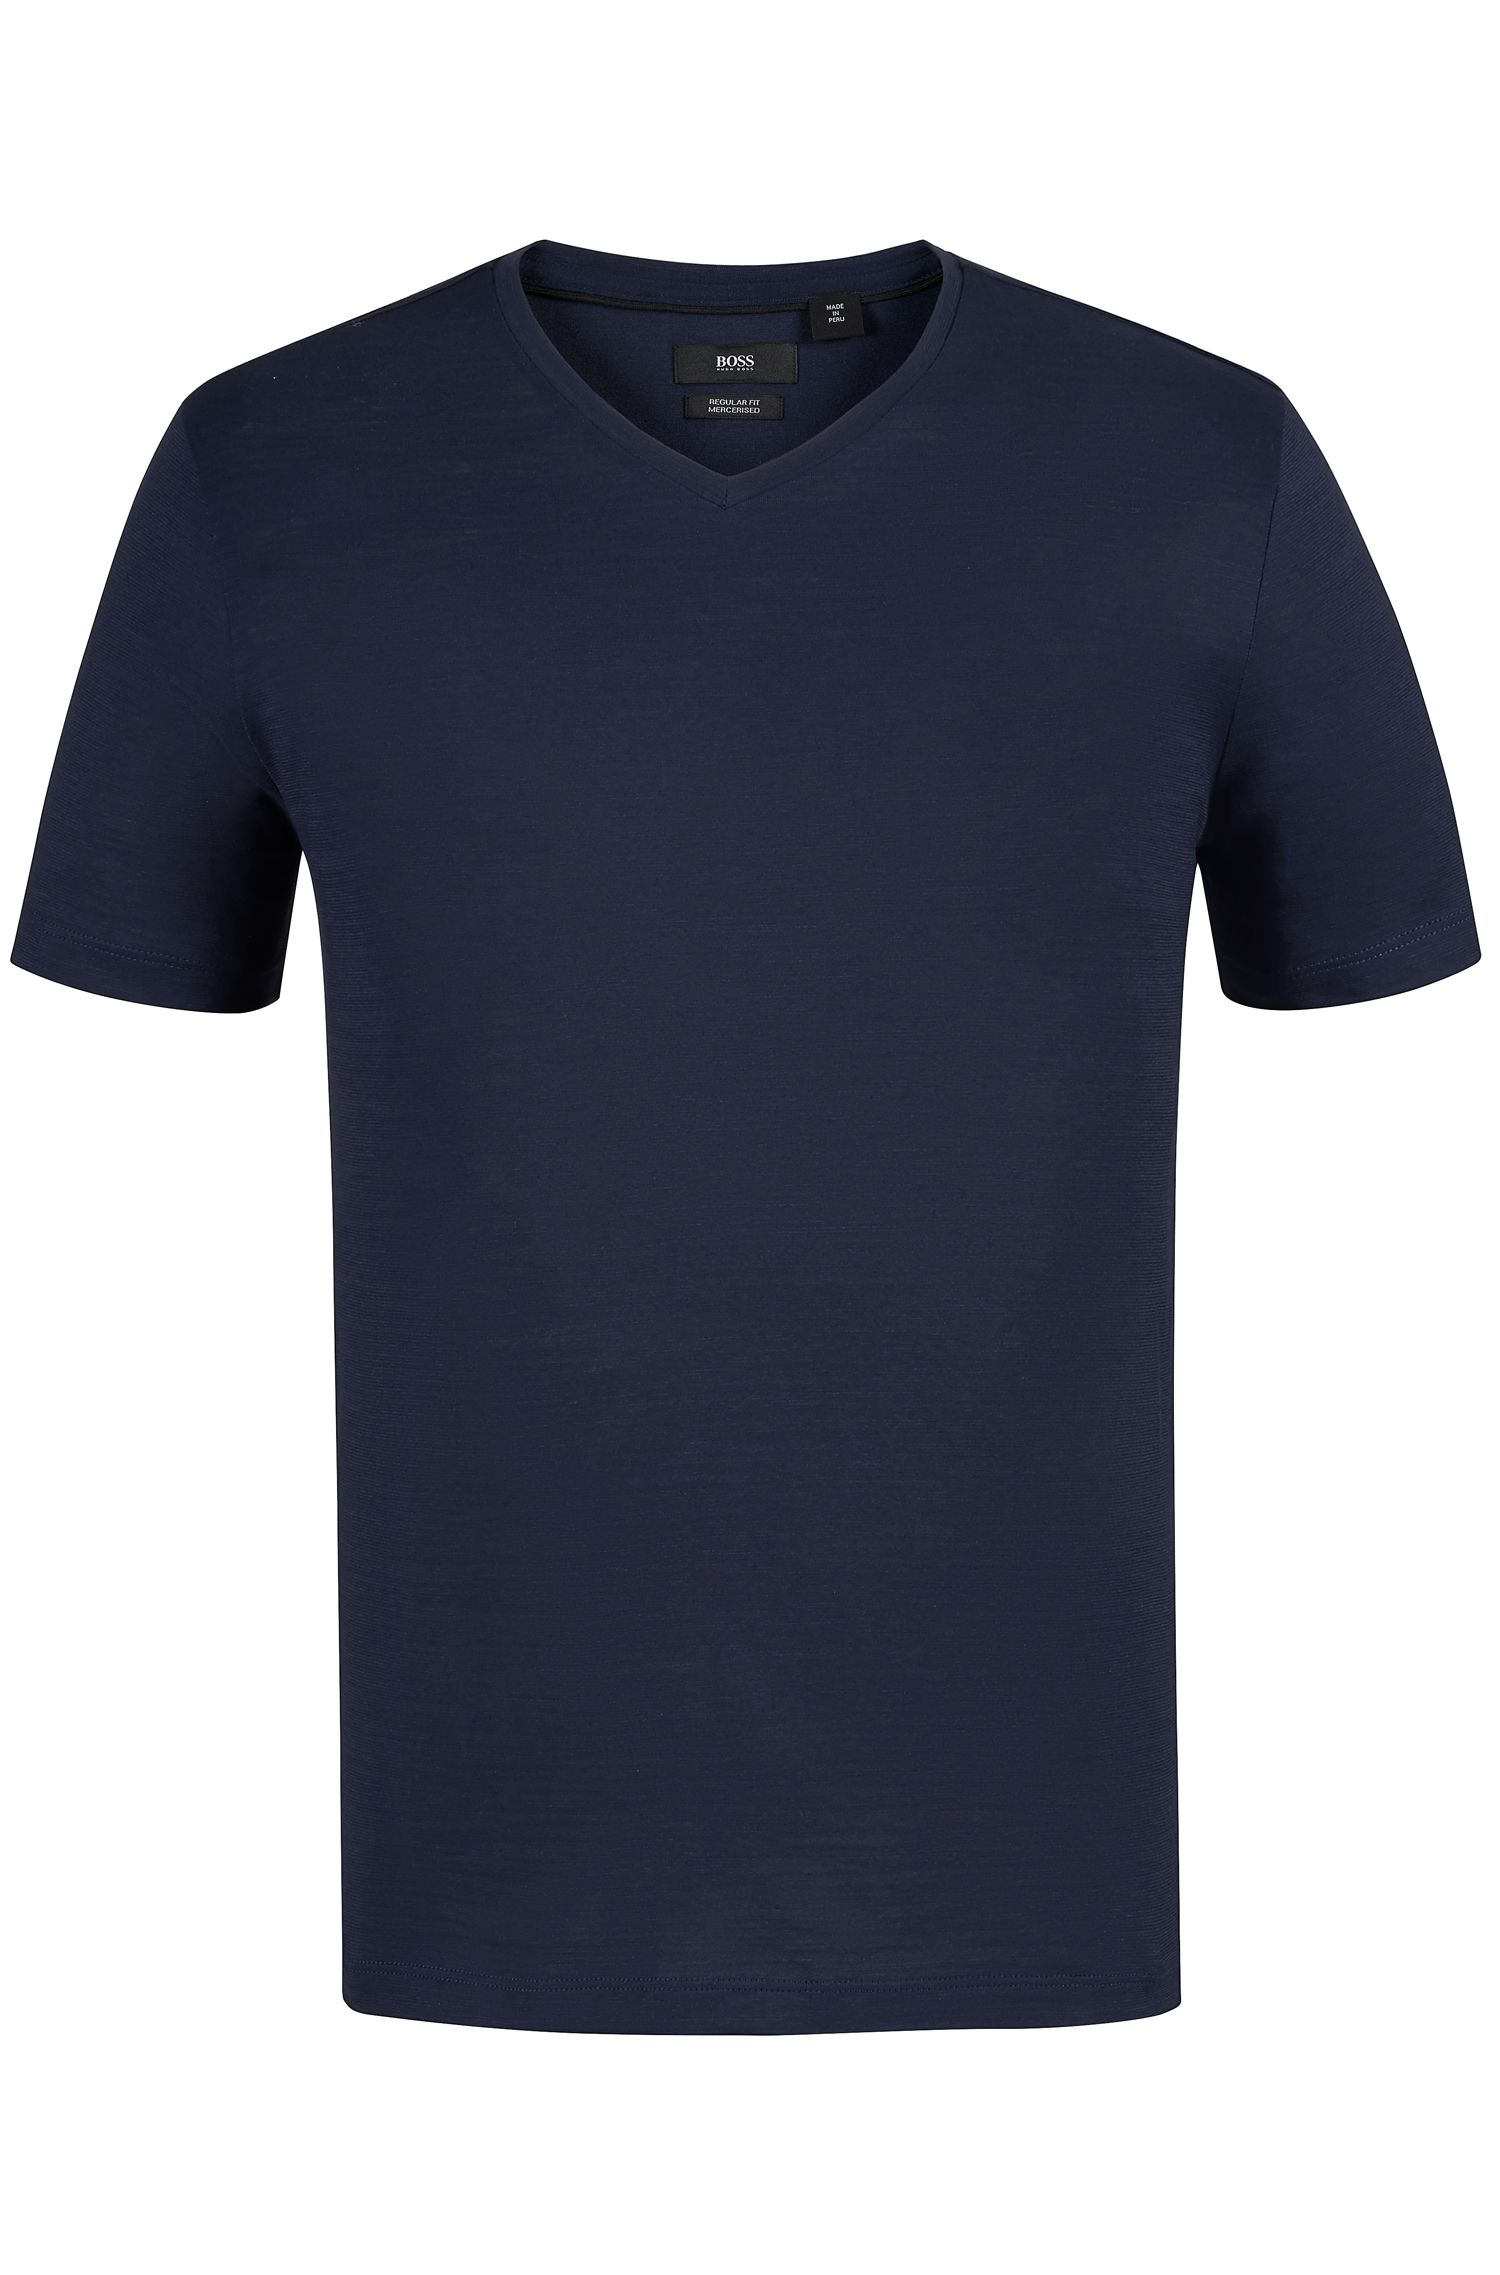 Regular-fit T-shirt in mercerized cotton